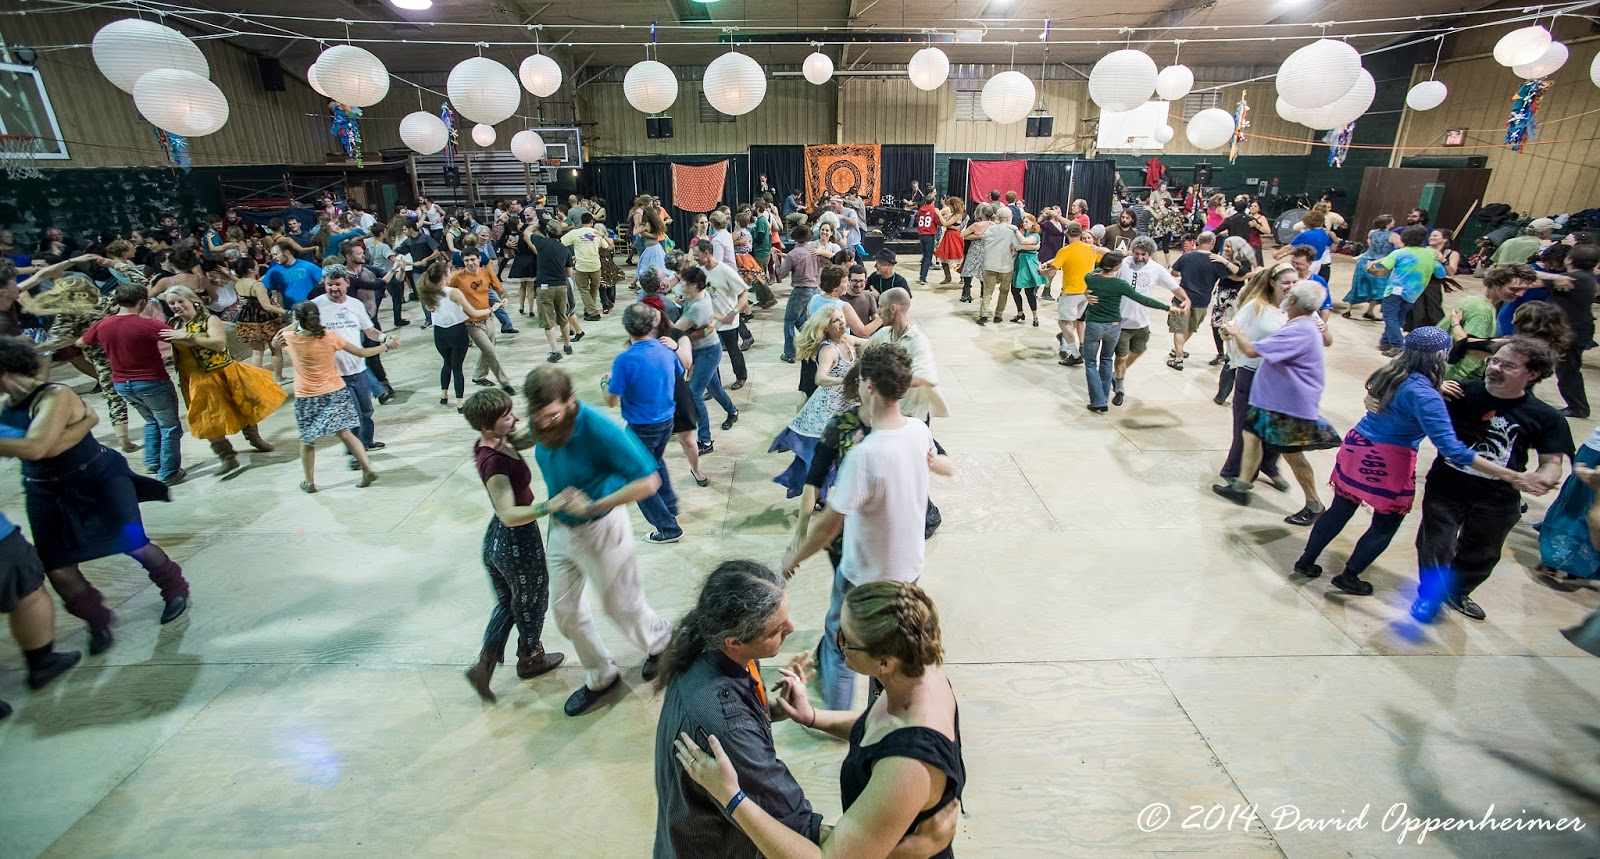 Contra dancing at LEAF Festival